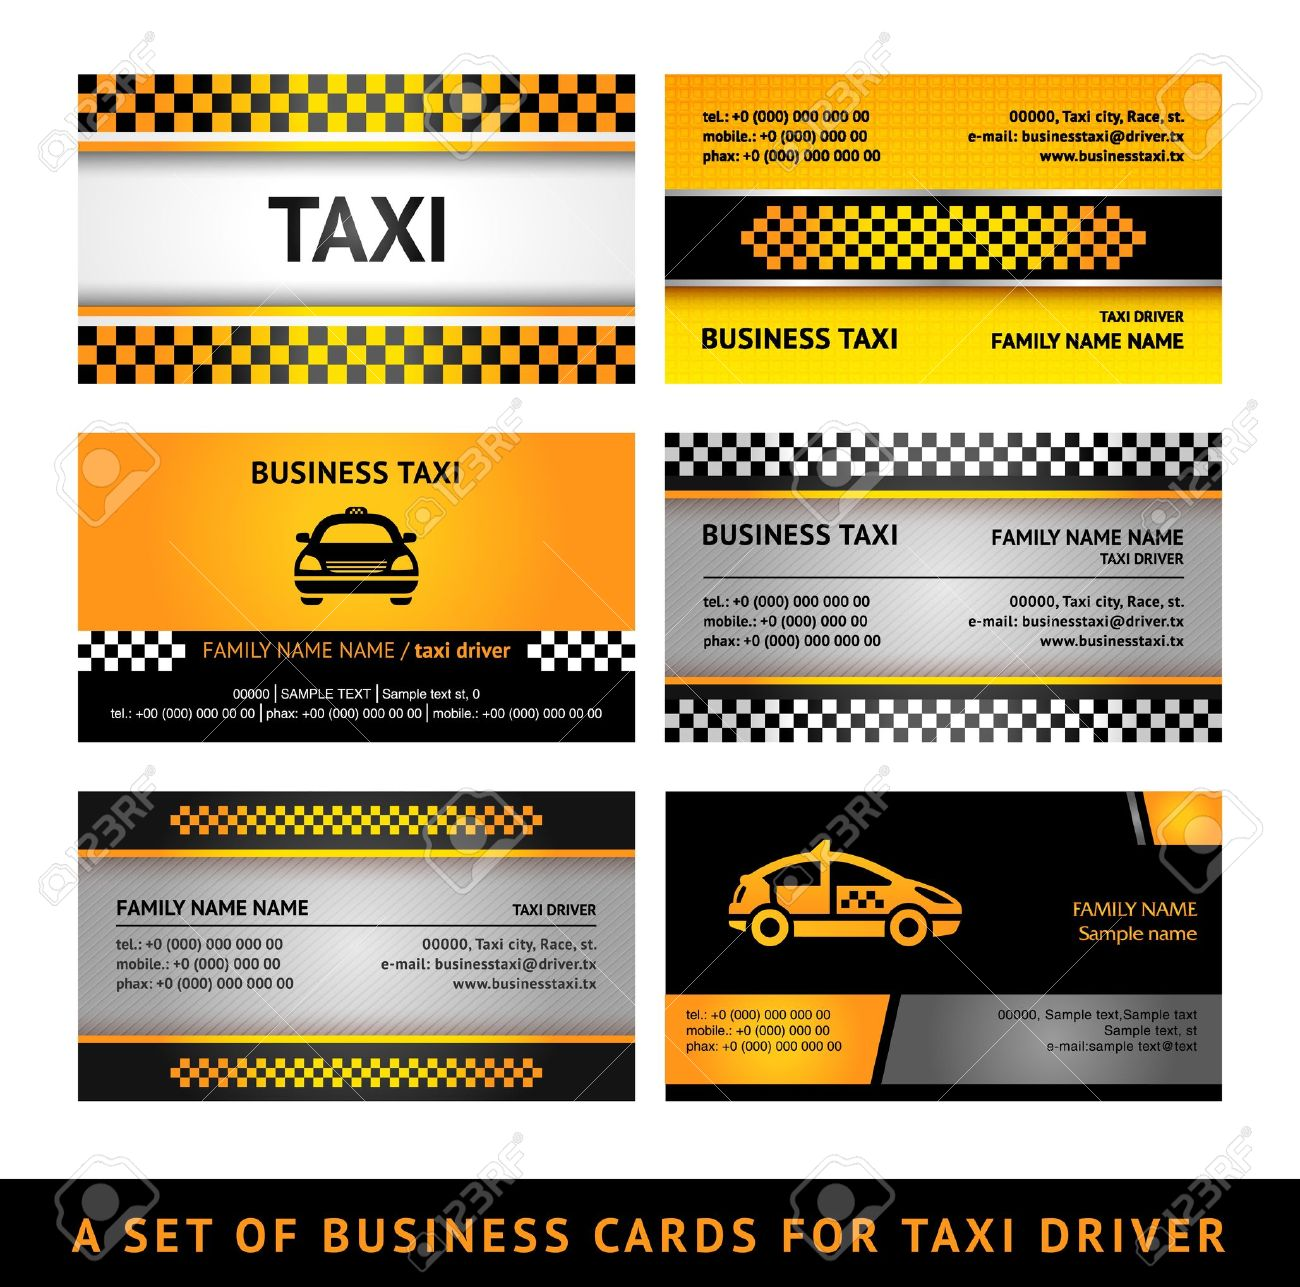 Business Card Taxi - Fourth Set Royalty Free Cliparts, Vectors, And ...